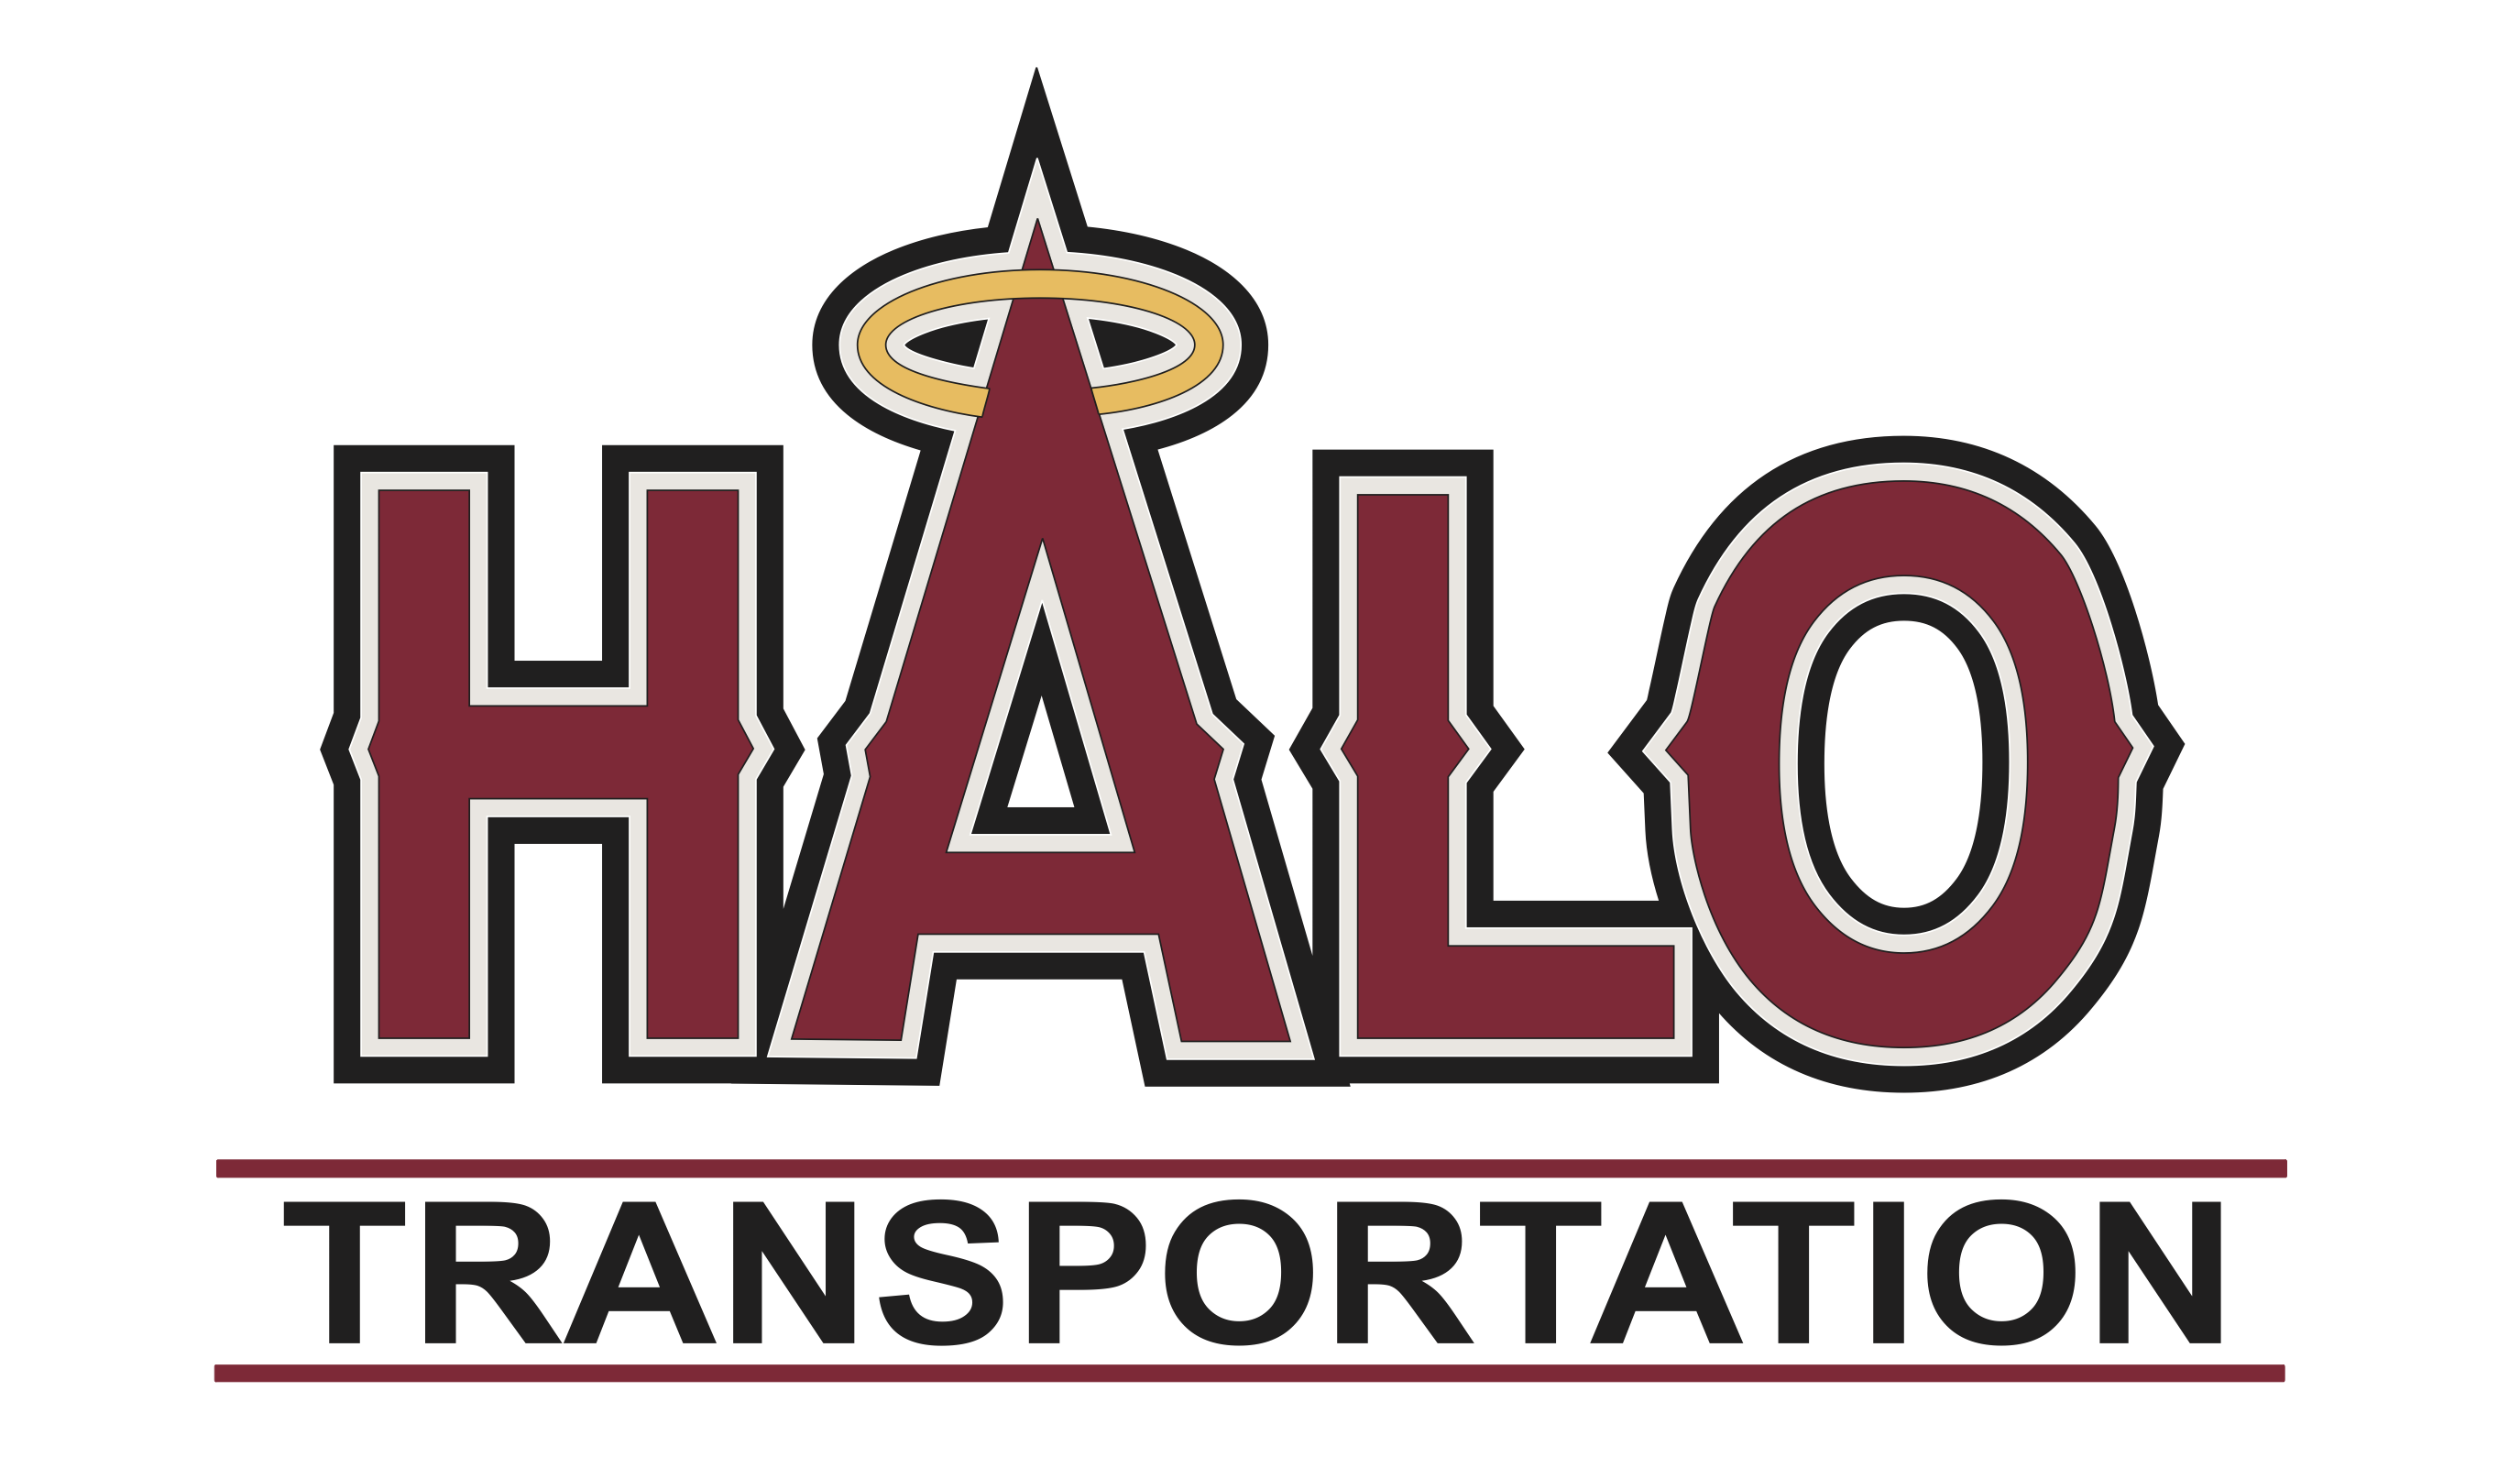 HALO Transportation